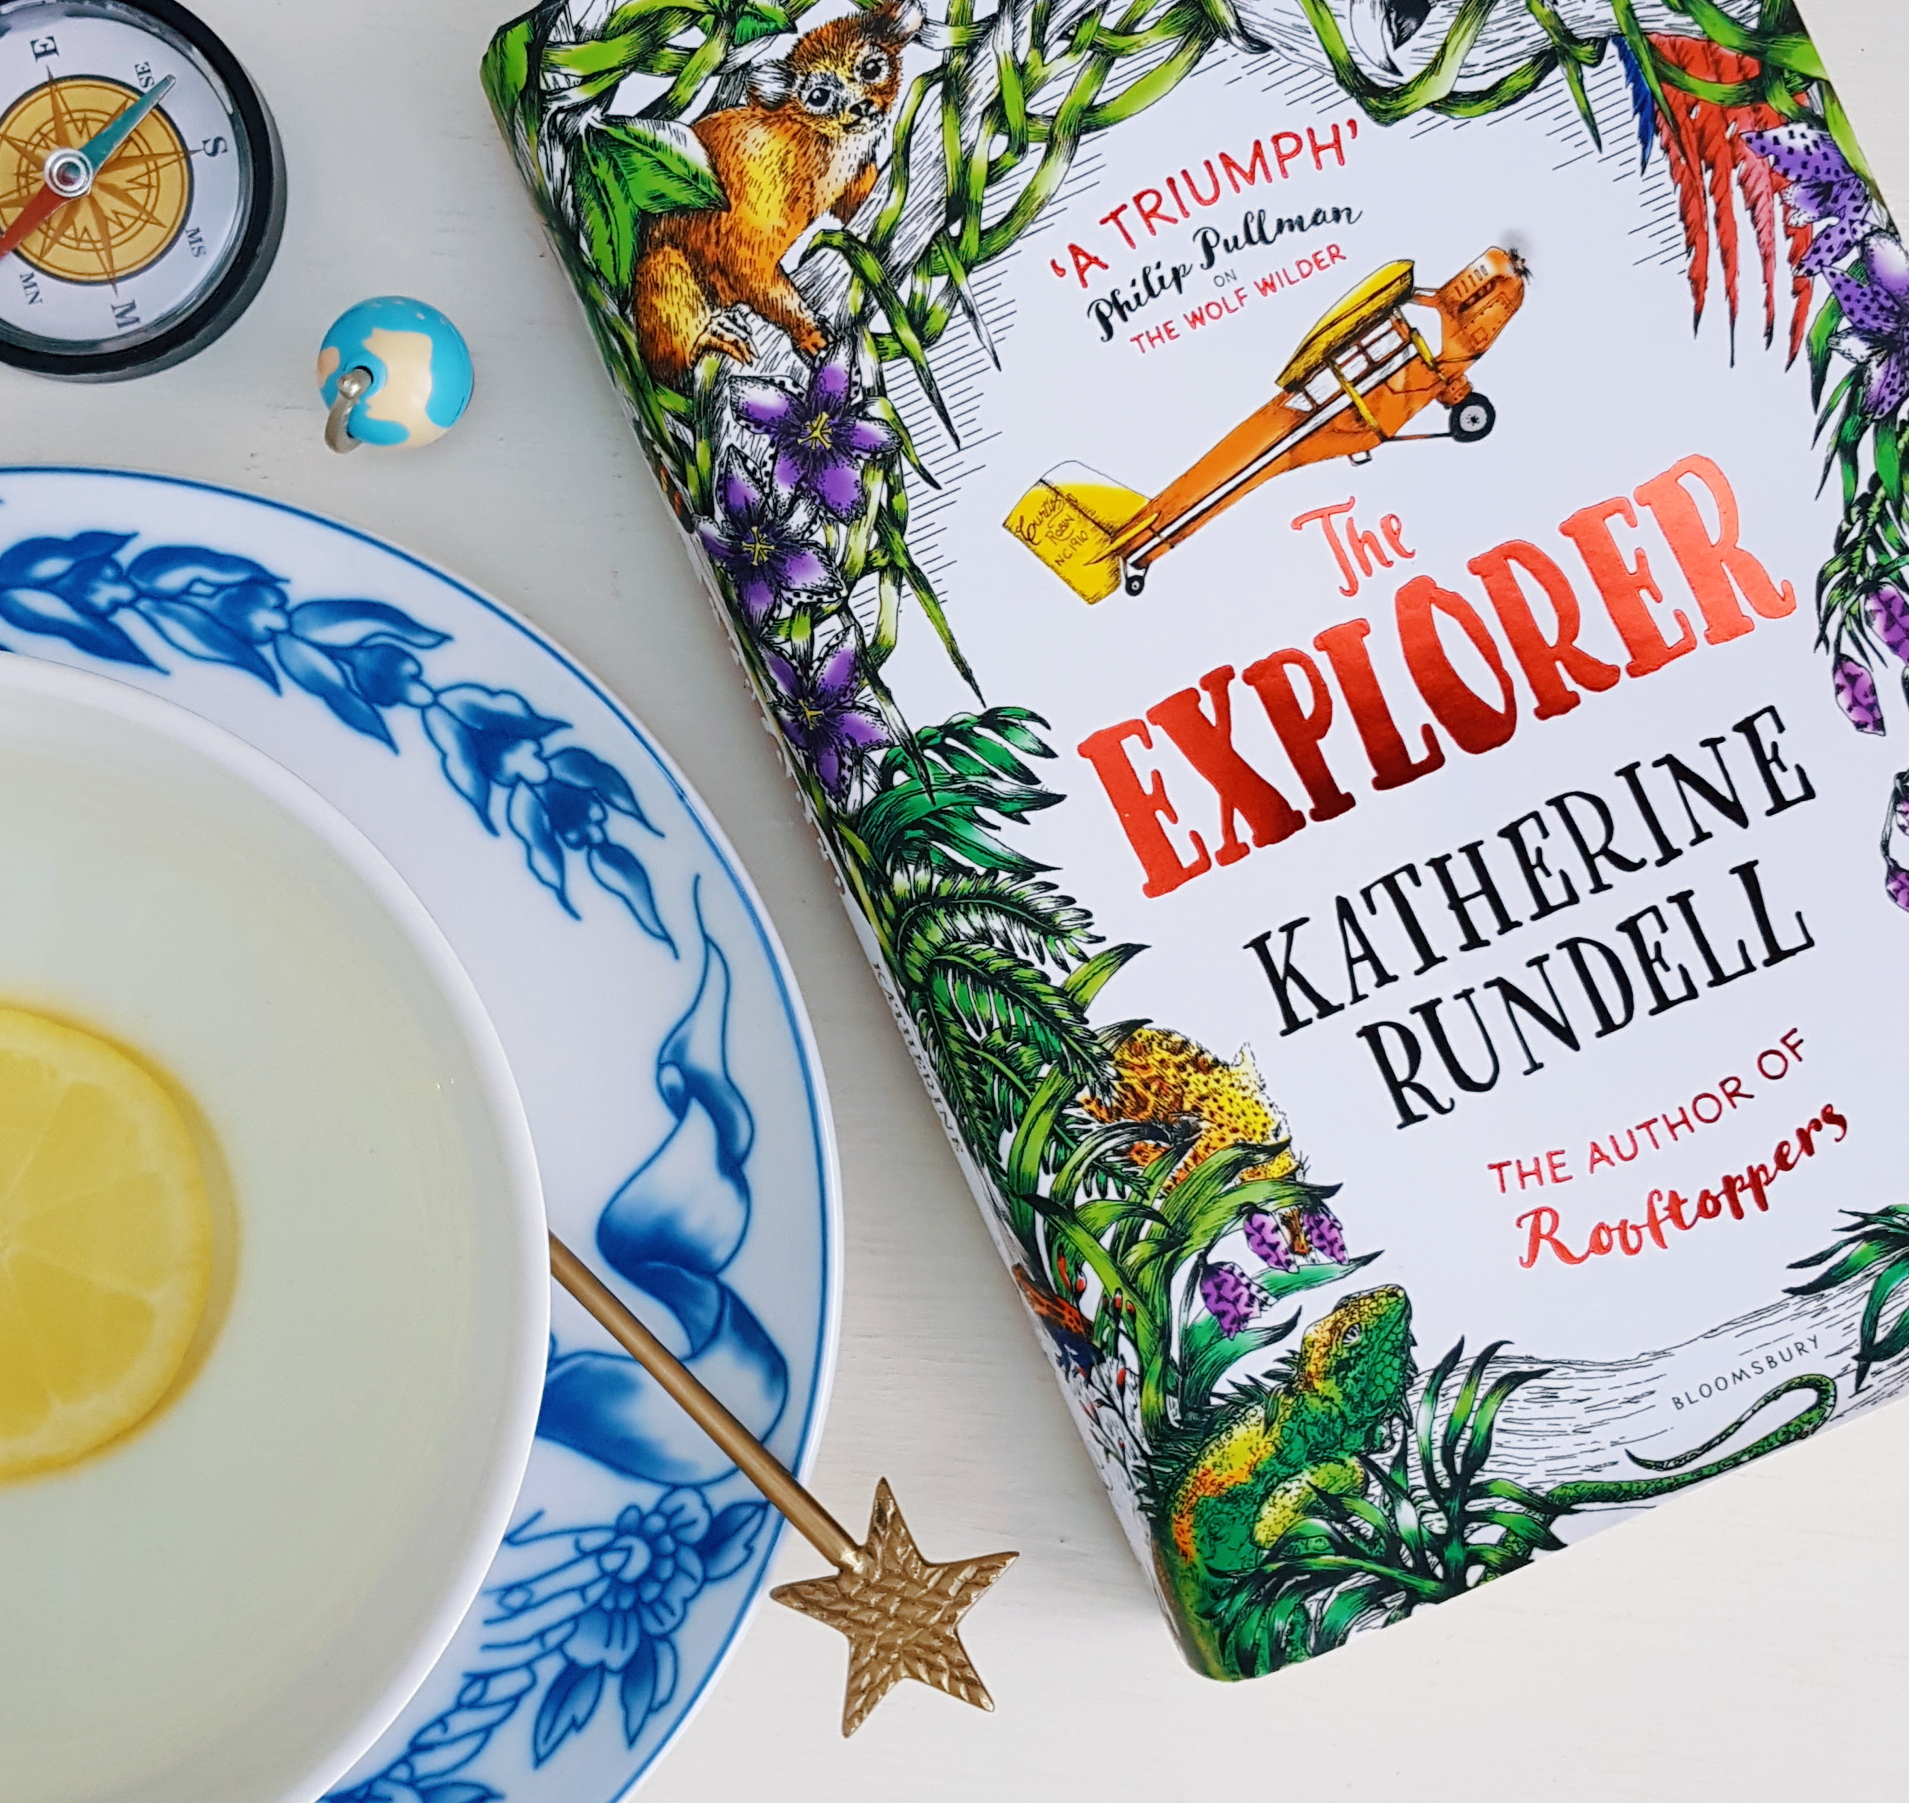 Book Review: The Explorer by Katherine Rundell